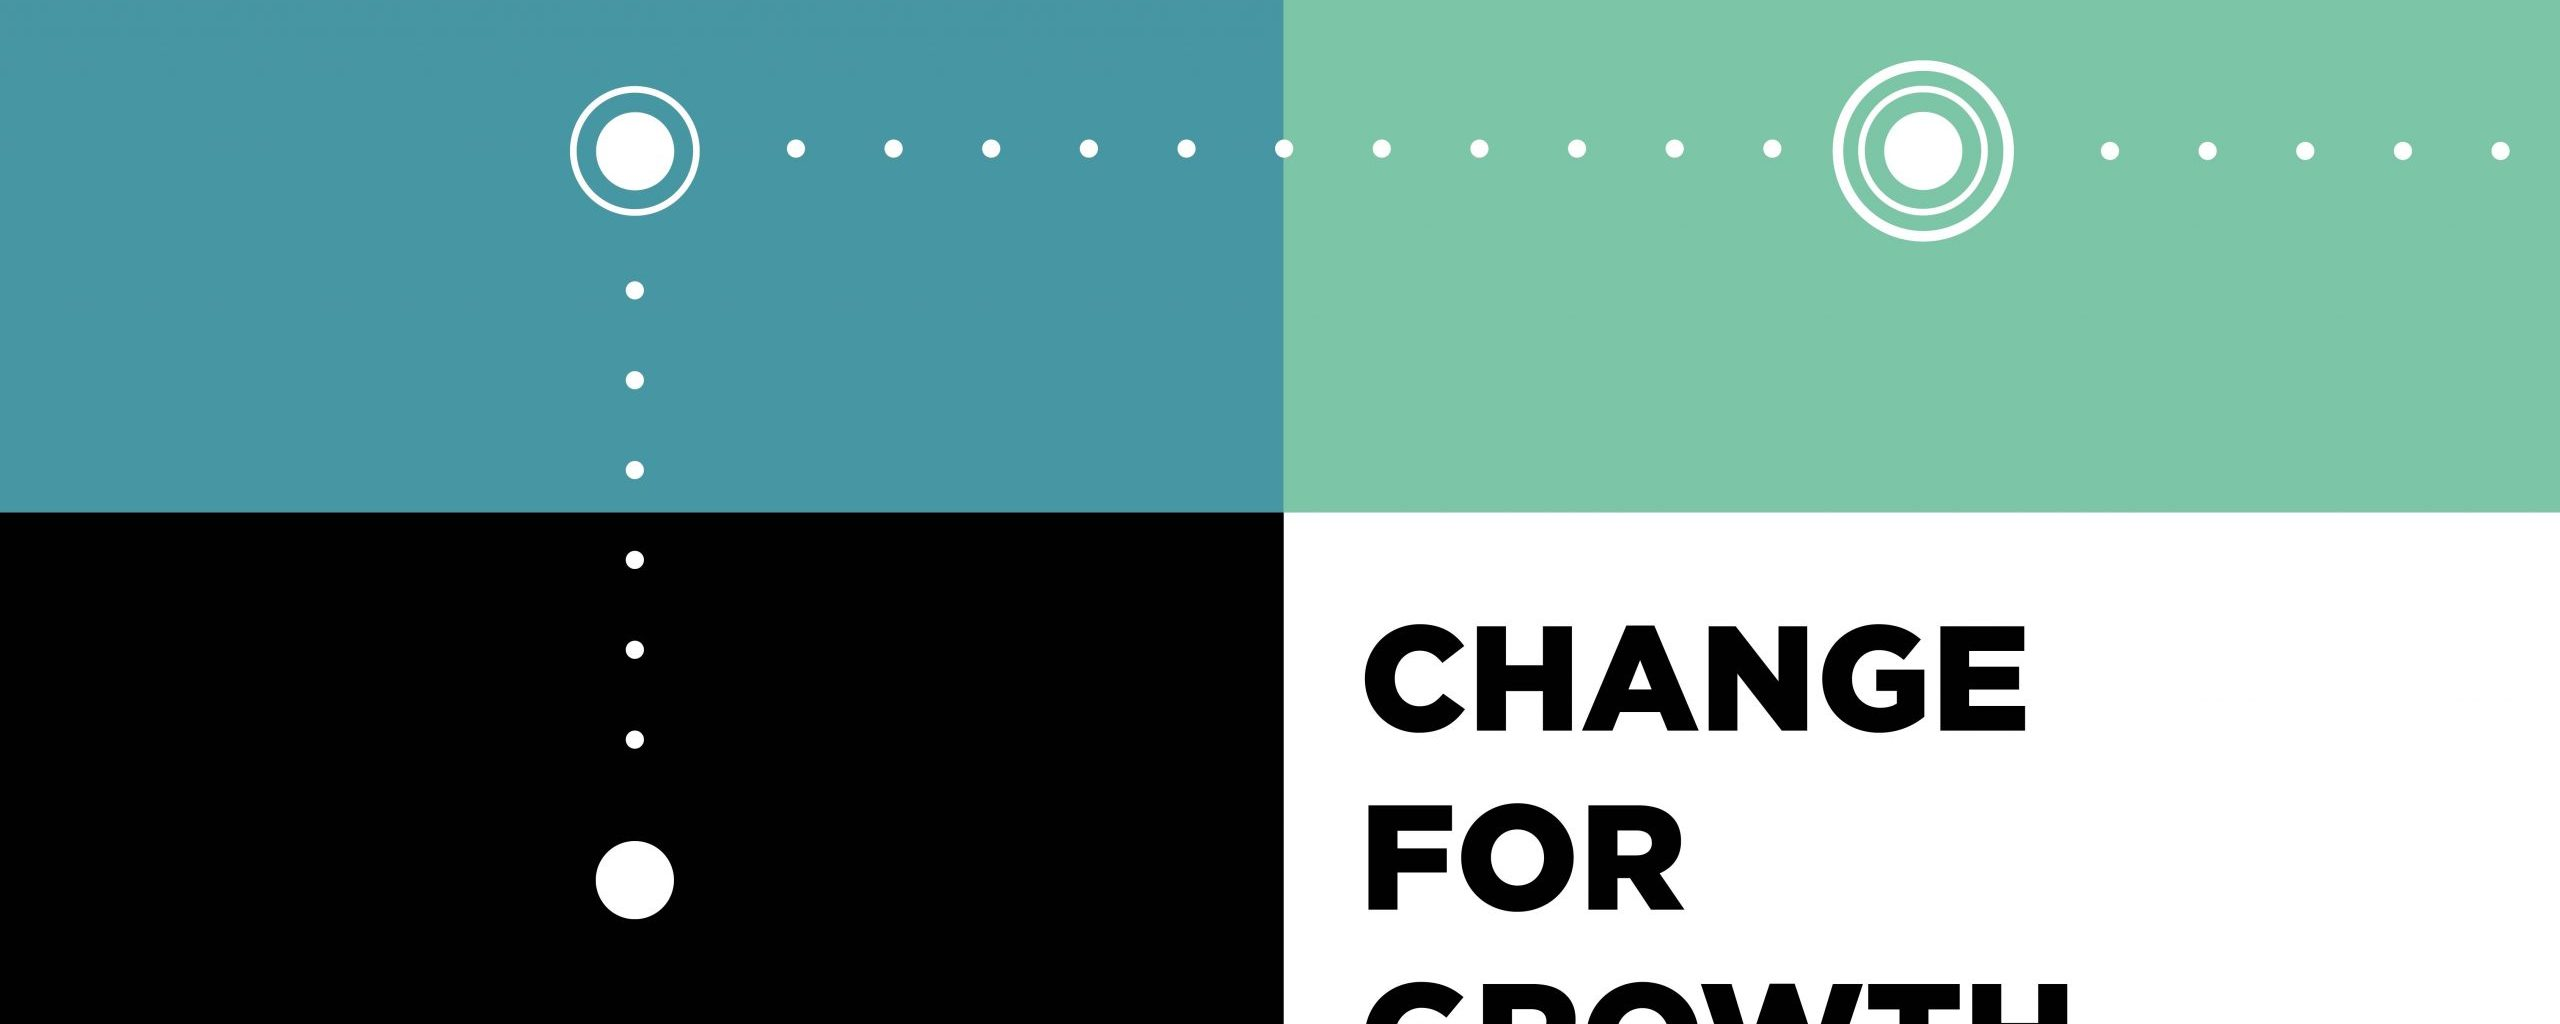 Change For Growth (Church Leaders)